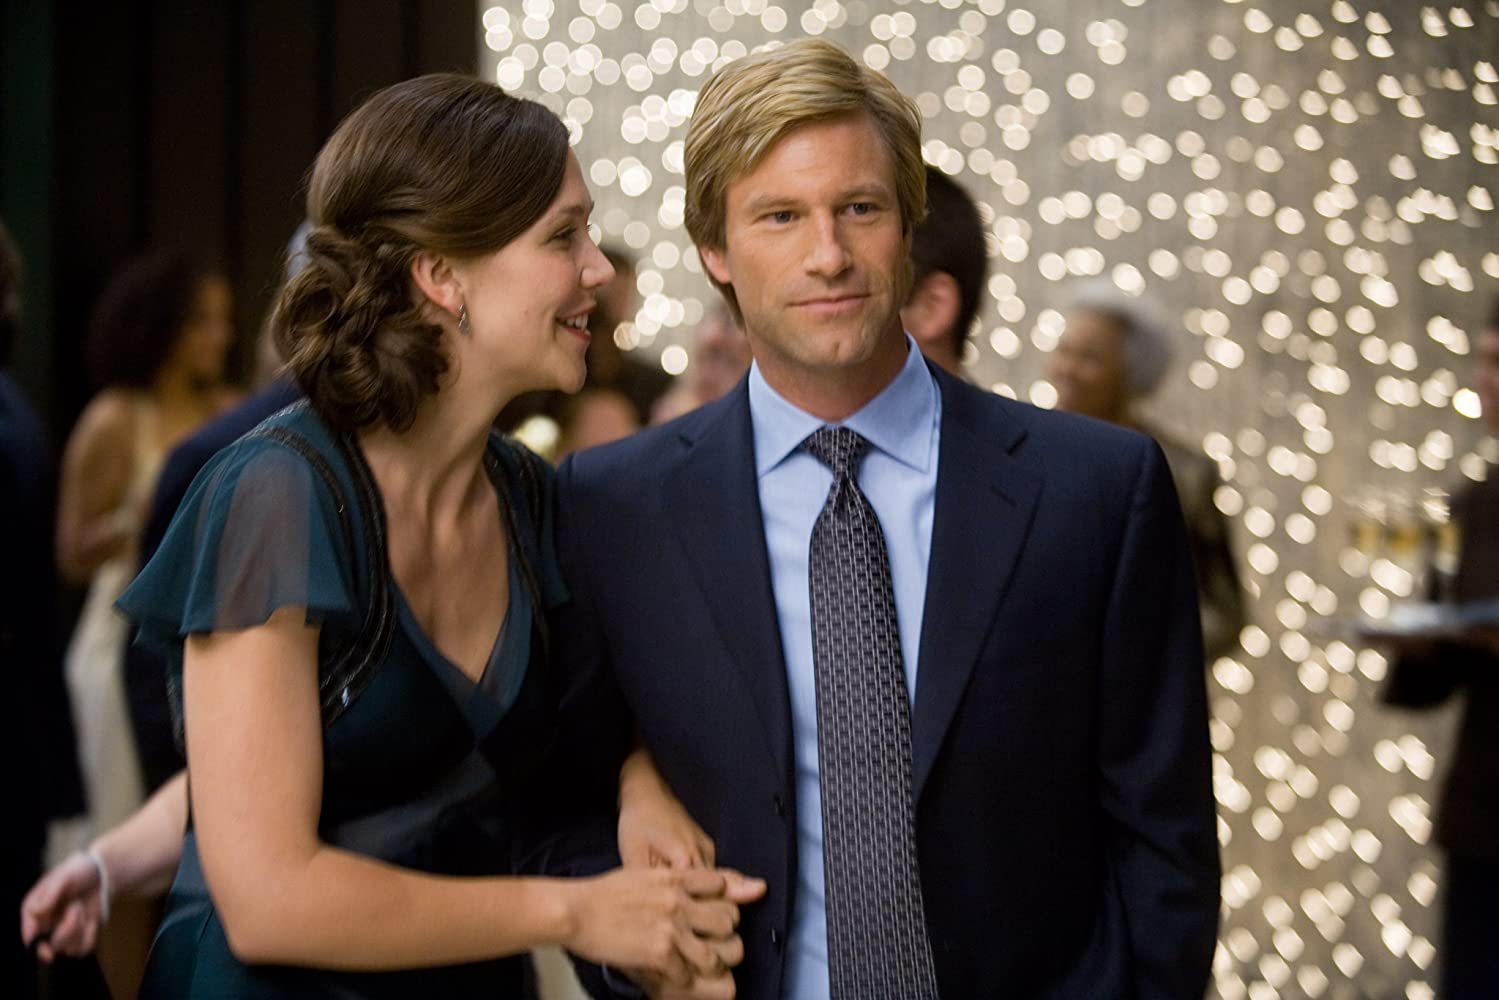 Aaron Eckhart and Maggie Gyllenhaal in The Dark Knight (2008)